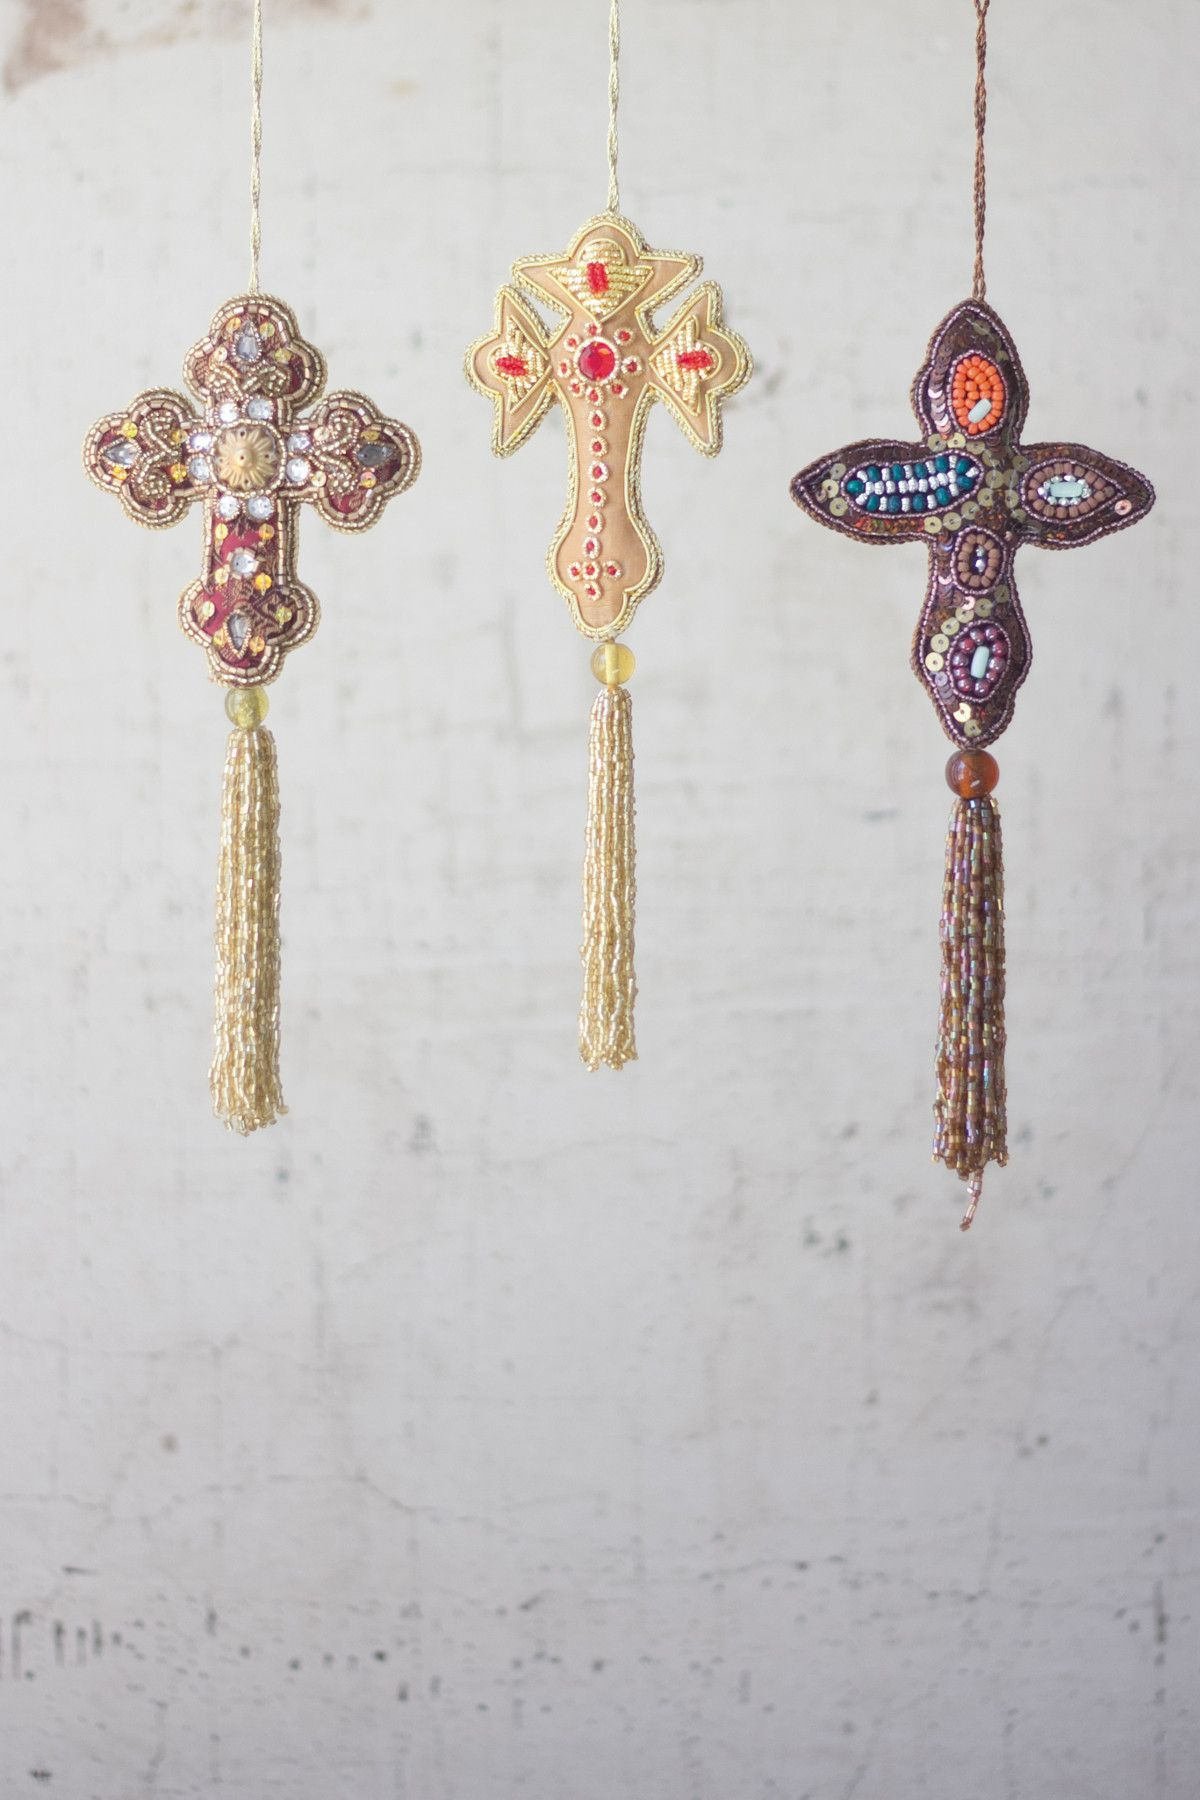 Kalalou beaded ornaments cross set of products pinterest